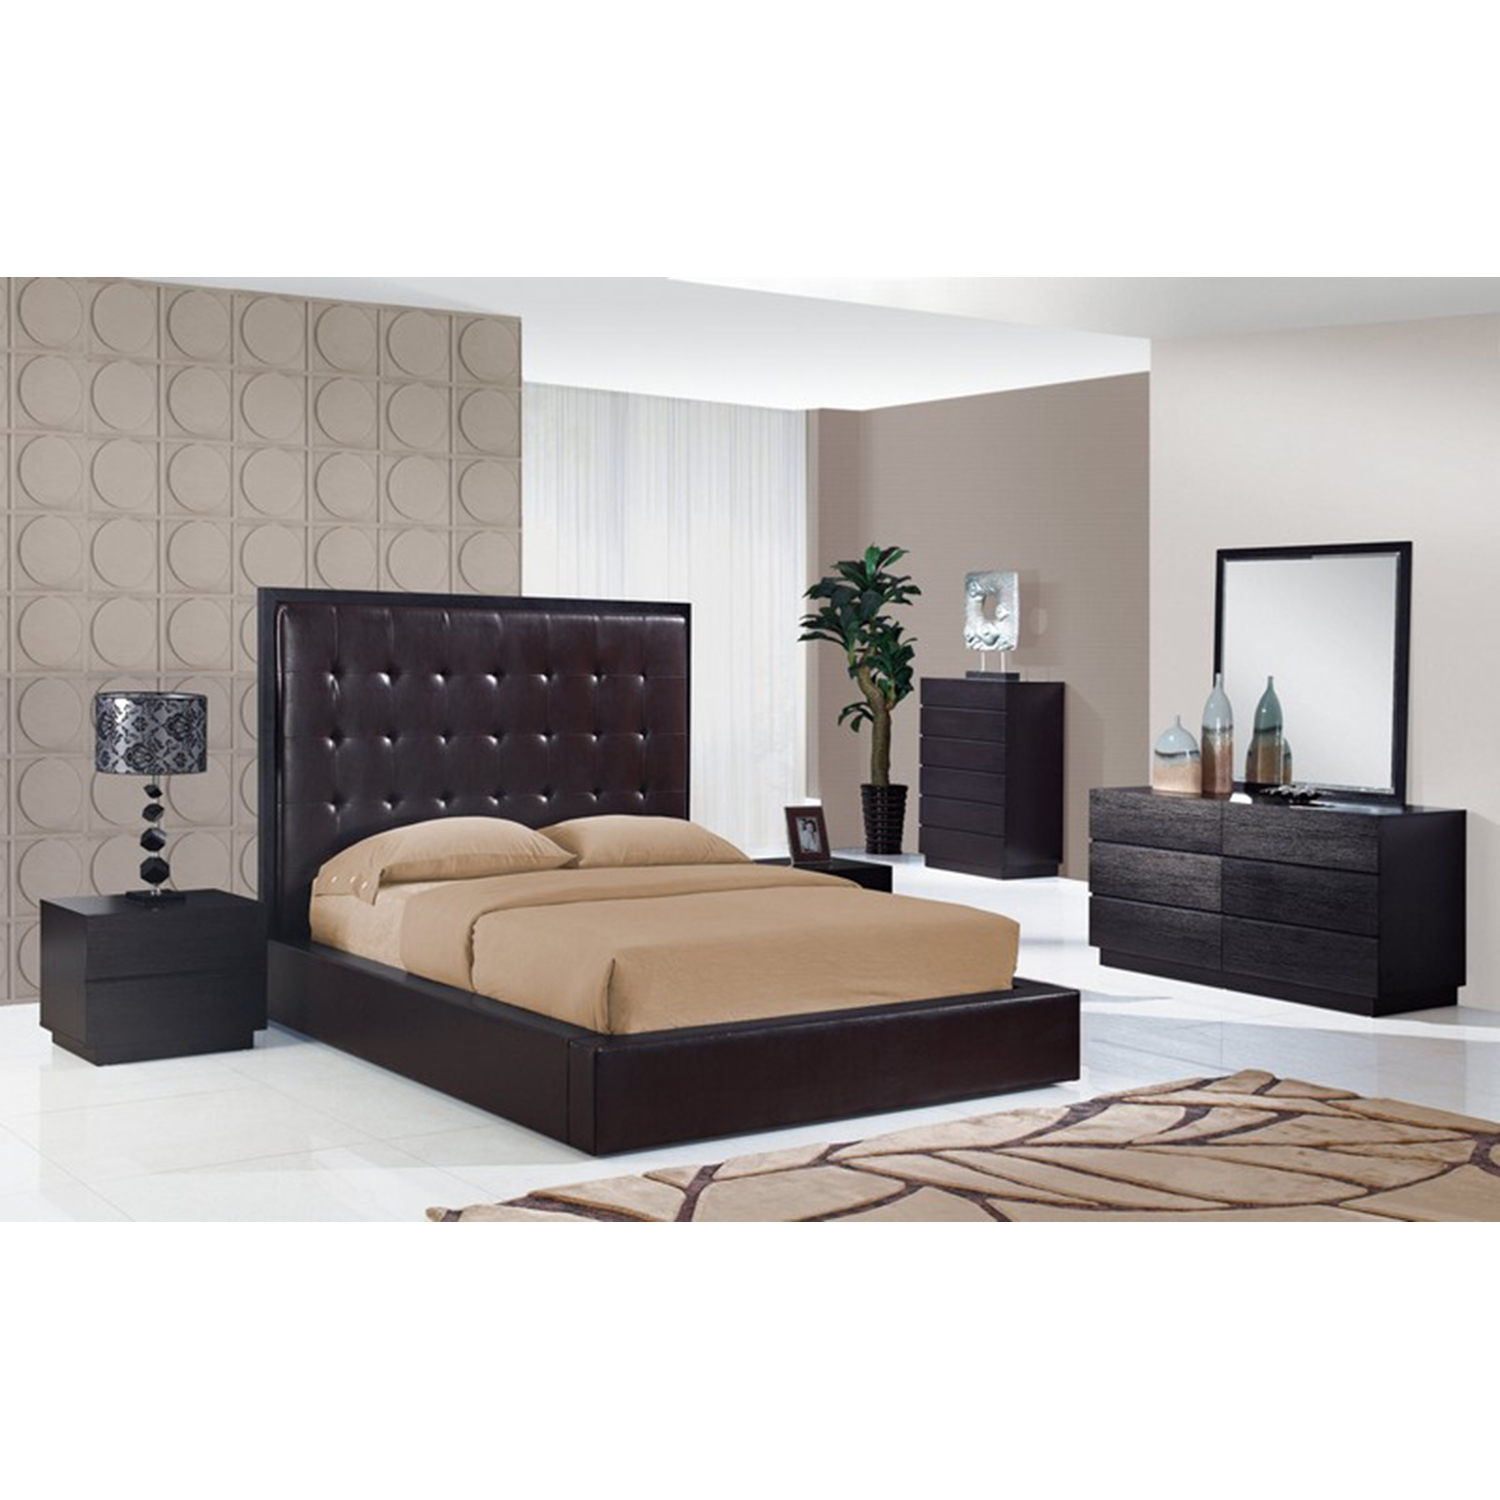 Metro Bed, Brown - GLO-METRO-CHOC-BED